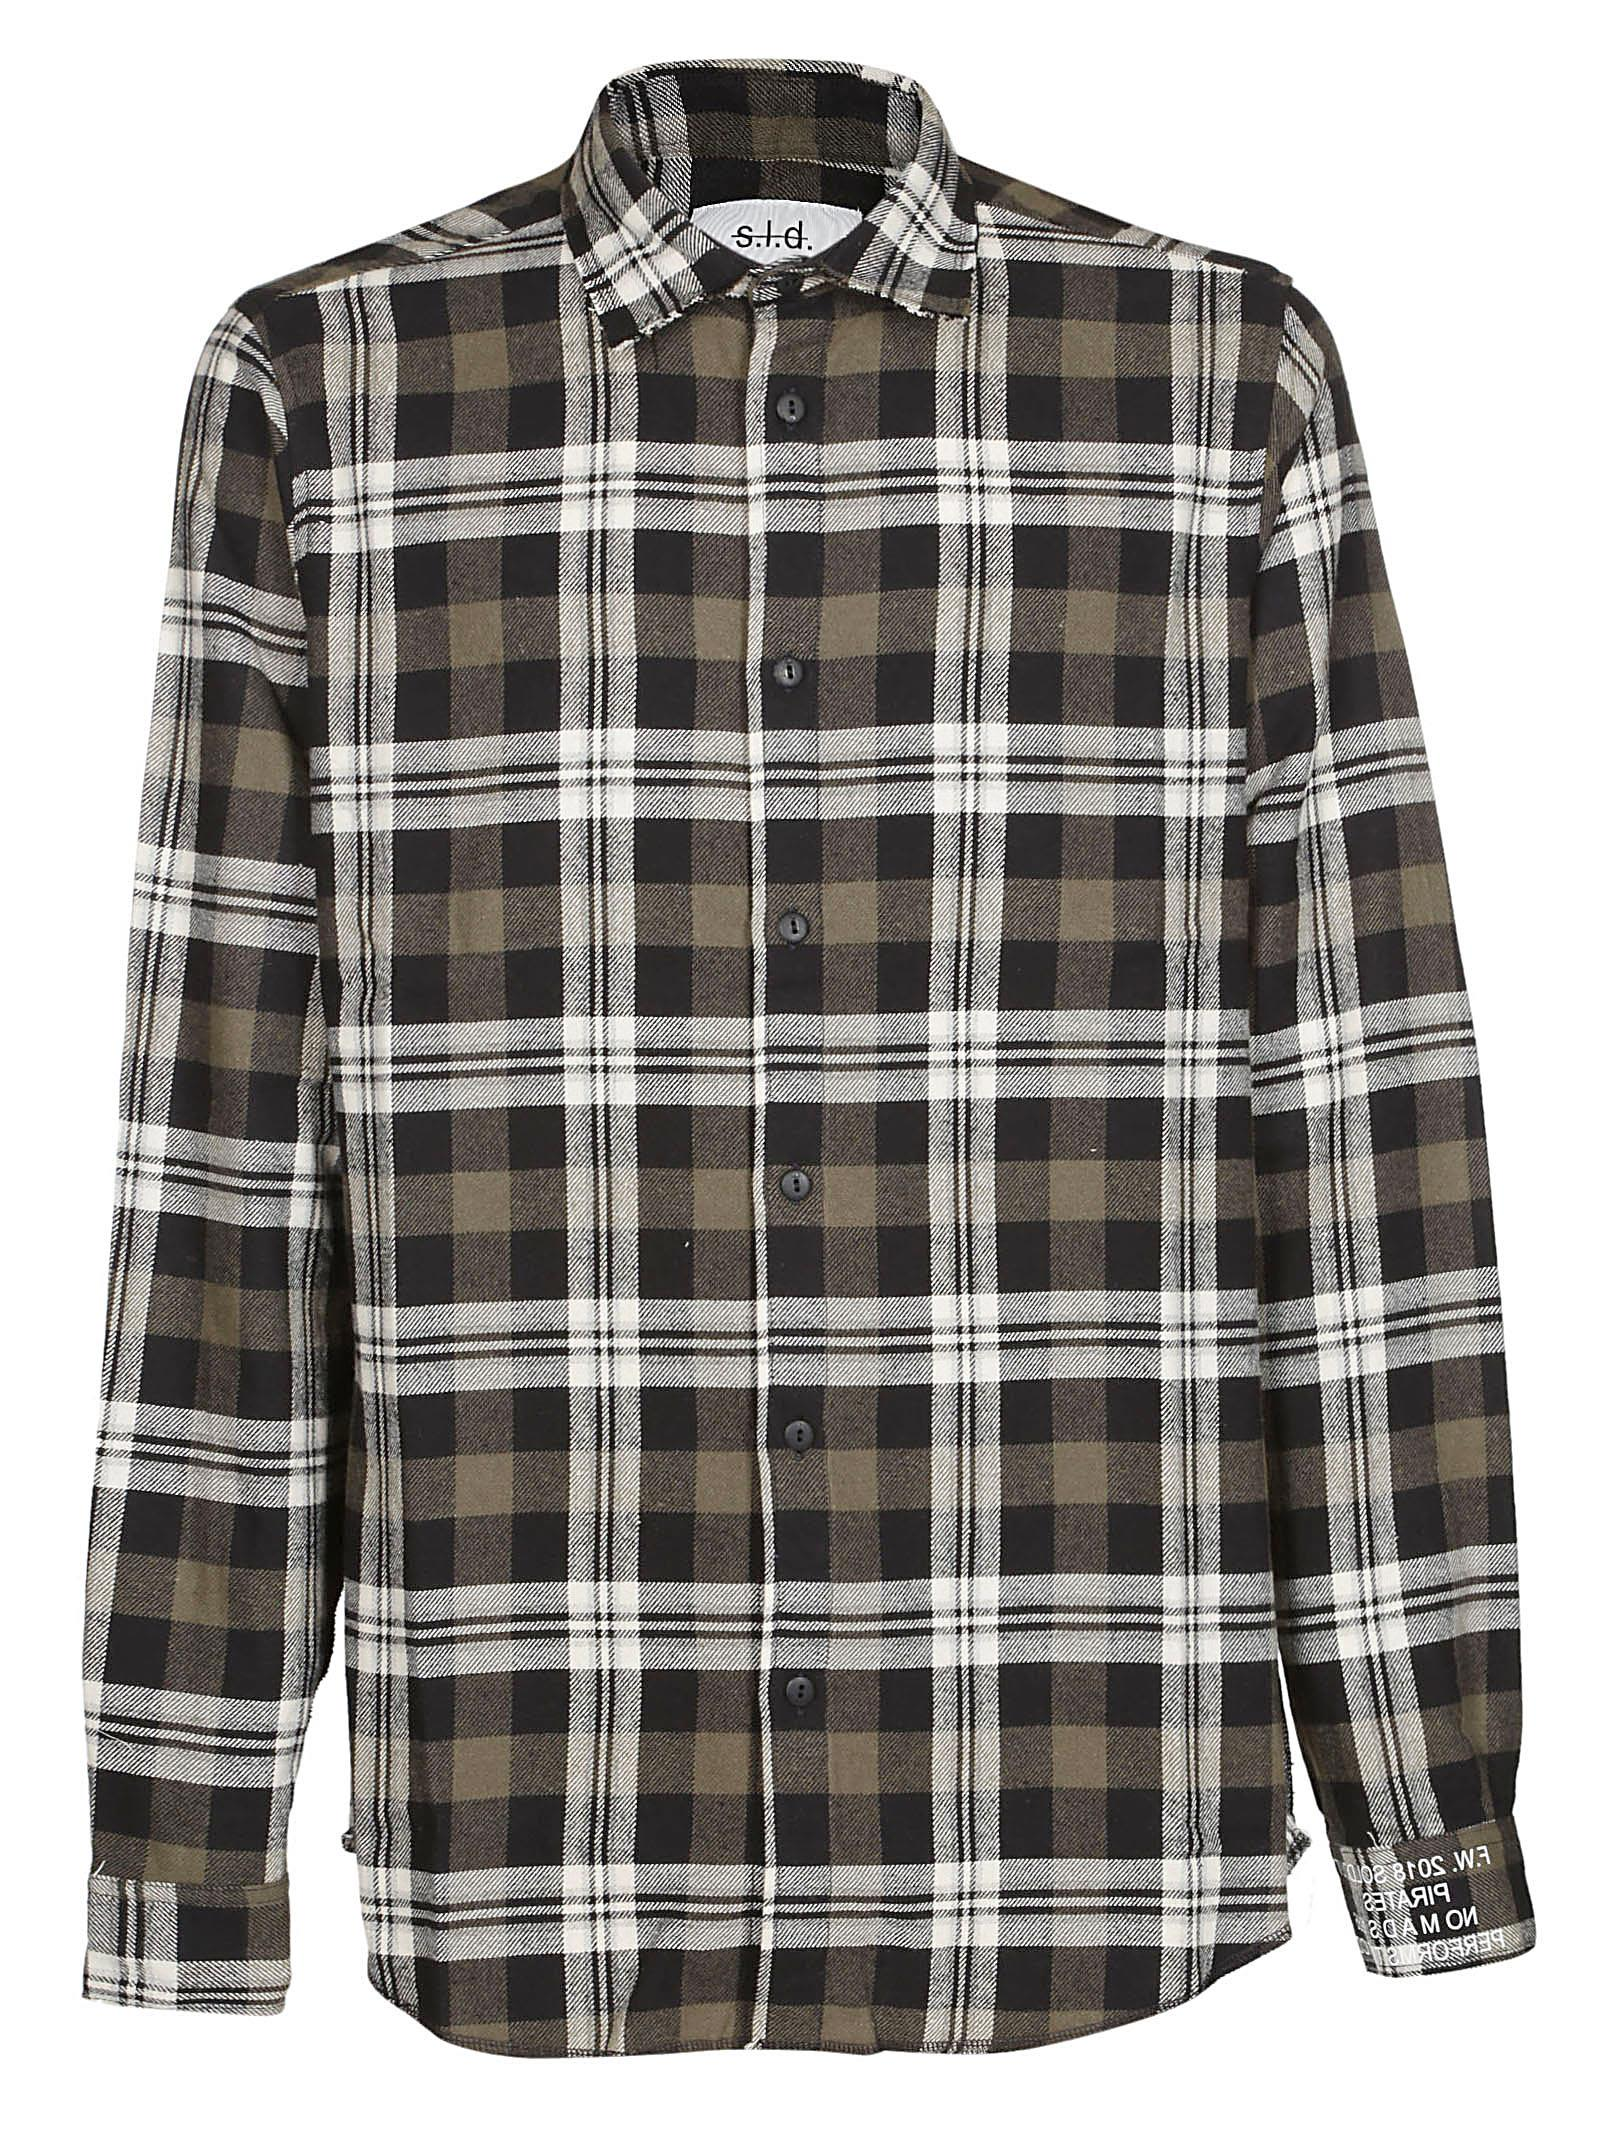 SOLD OUT FRVR Plaid Shirt in Fantasia